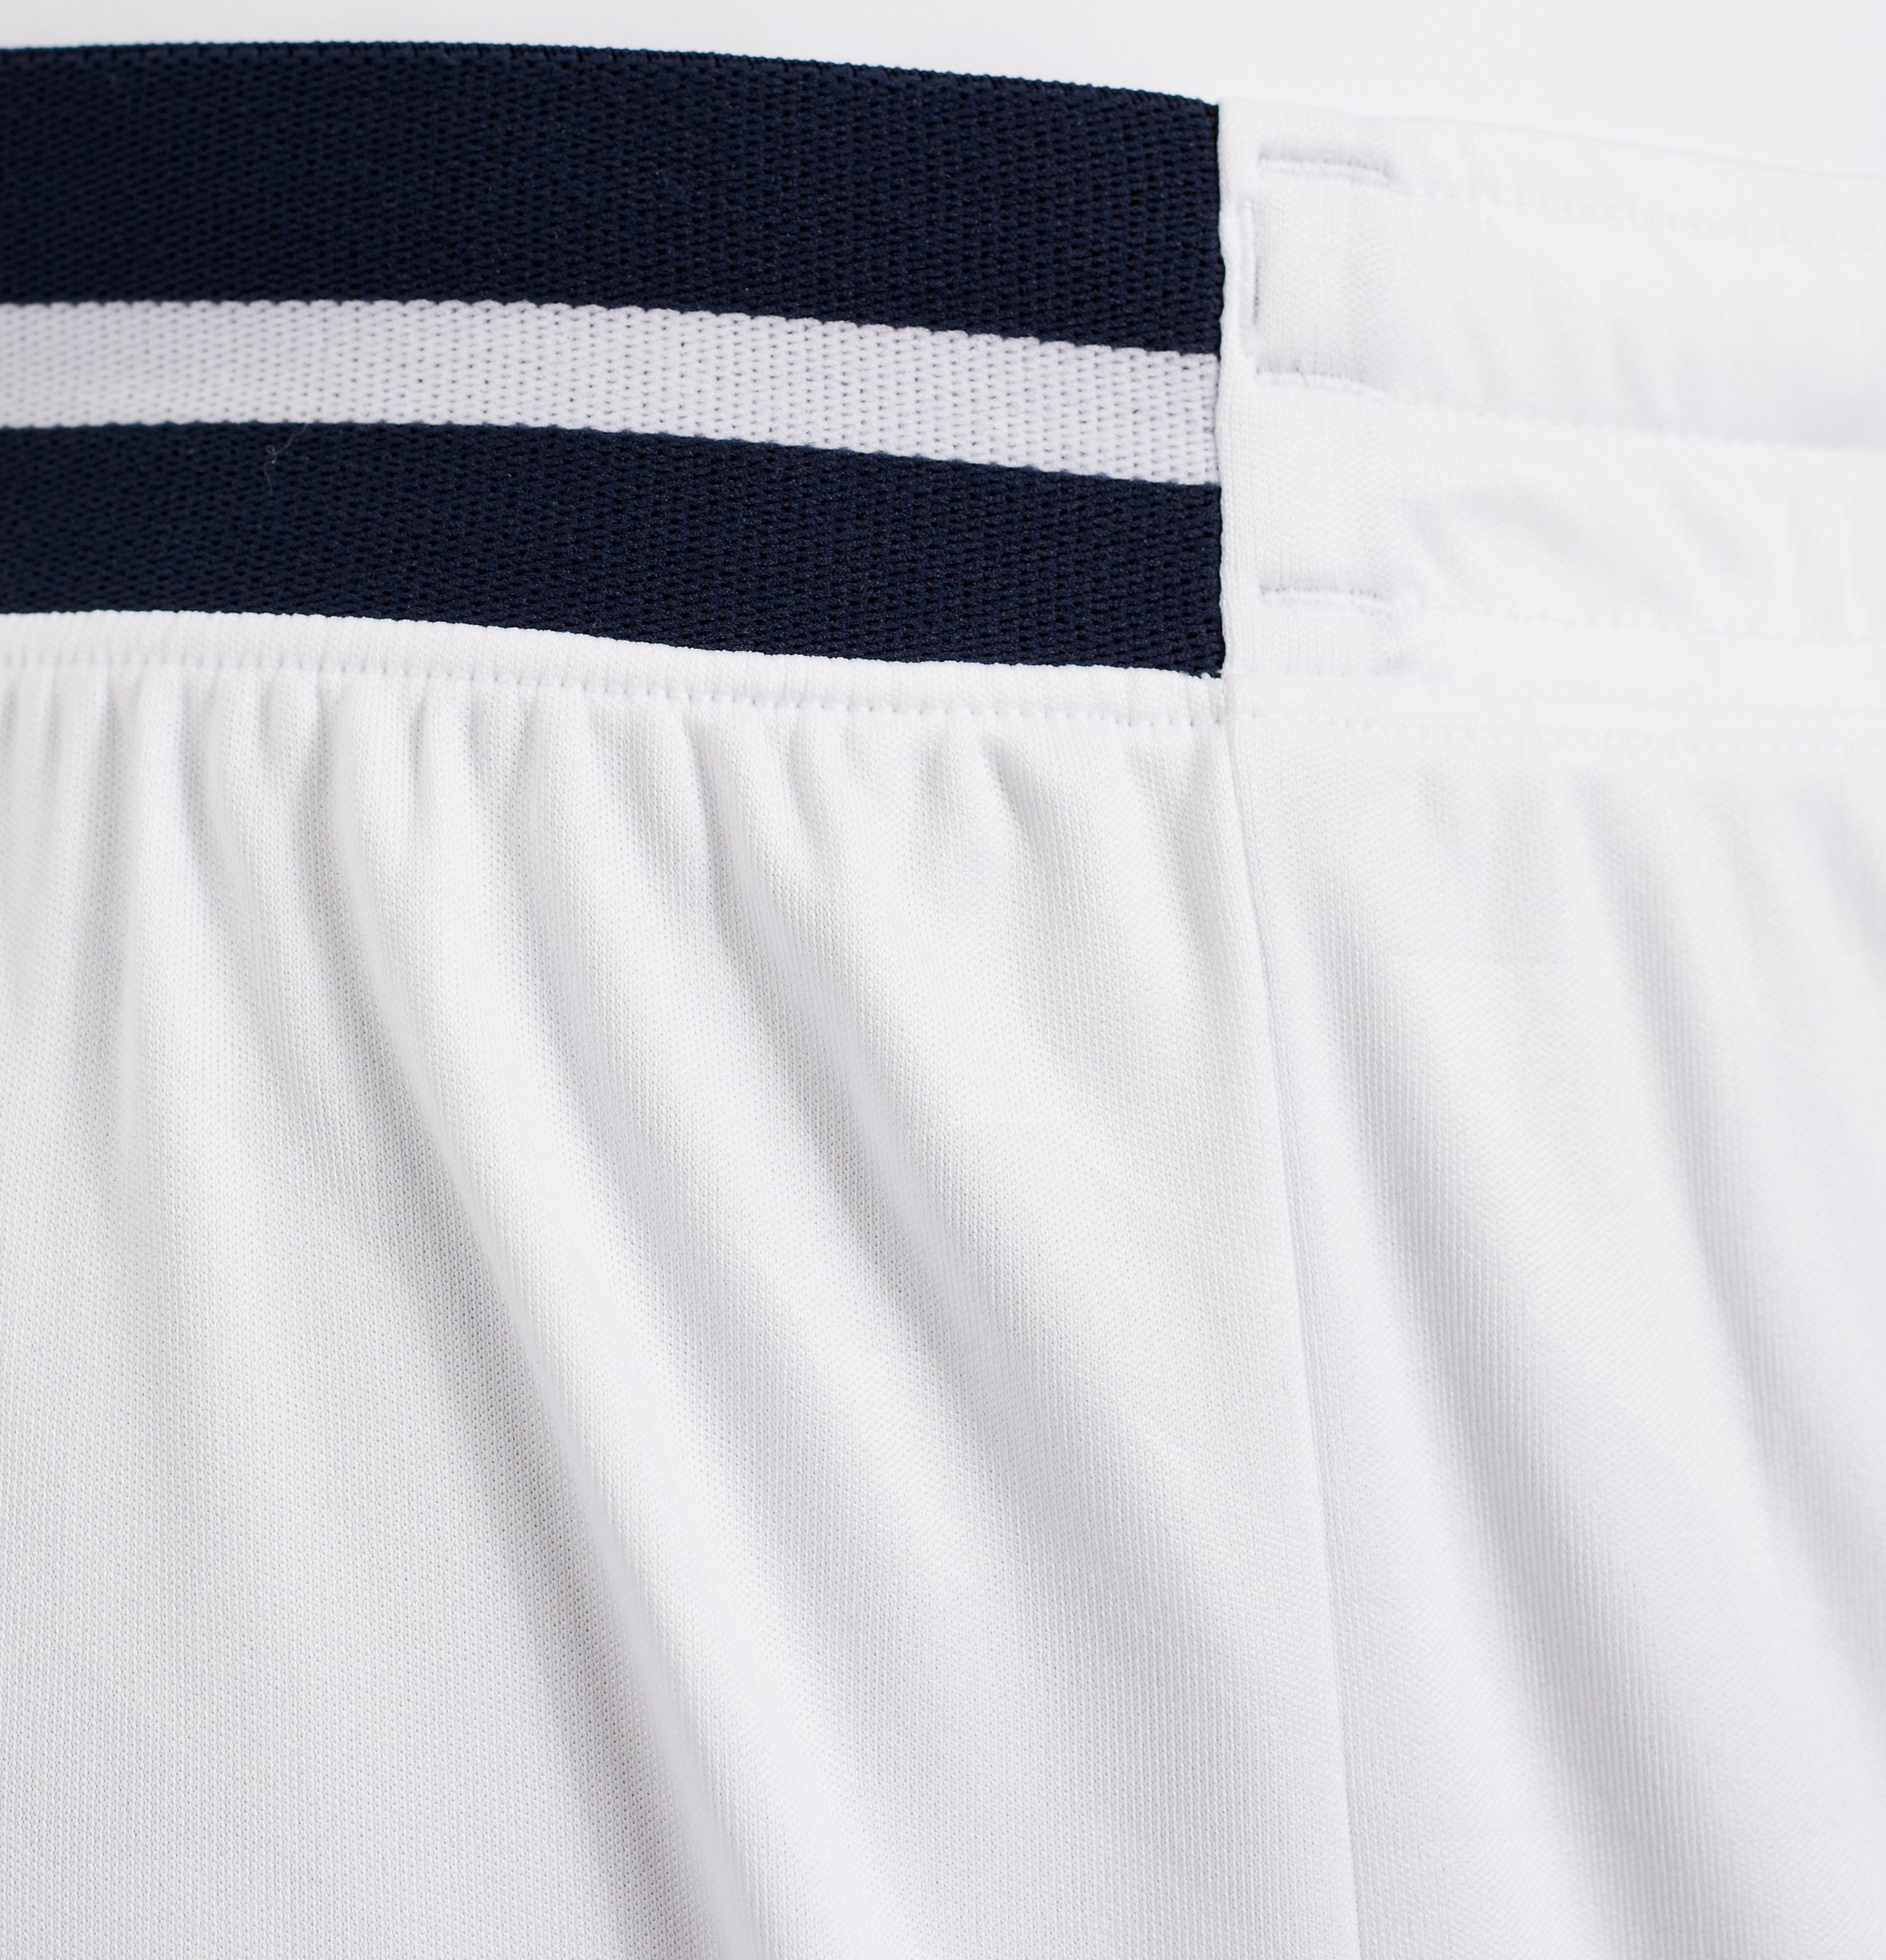 Men's Tottenham Hotspur 13/14 Home Shorts, White